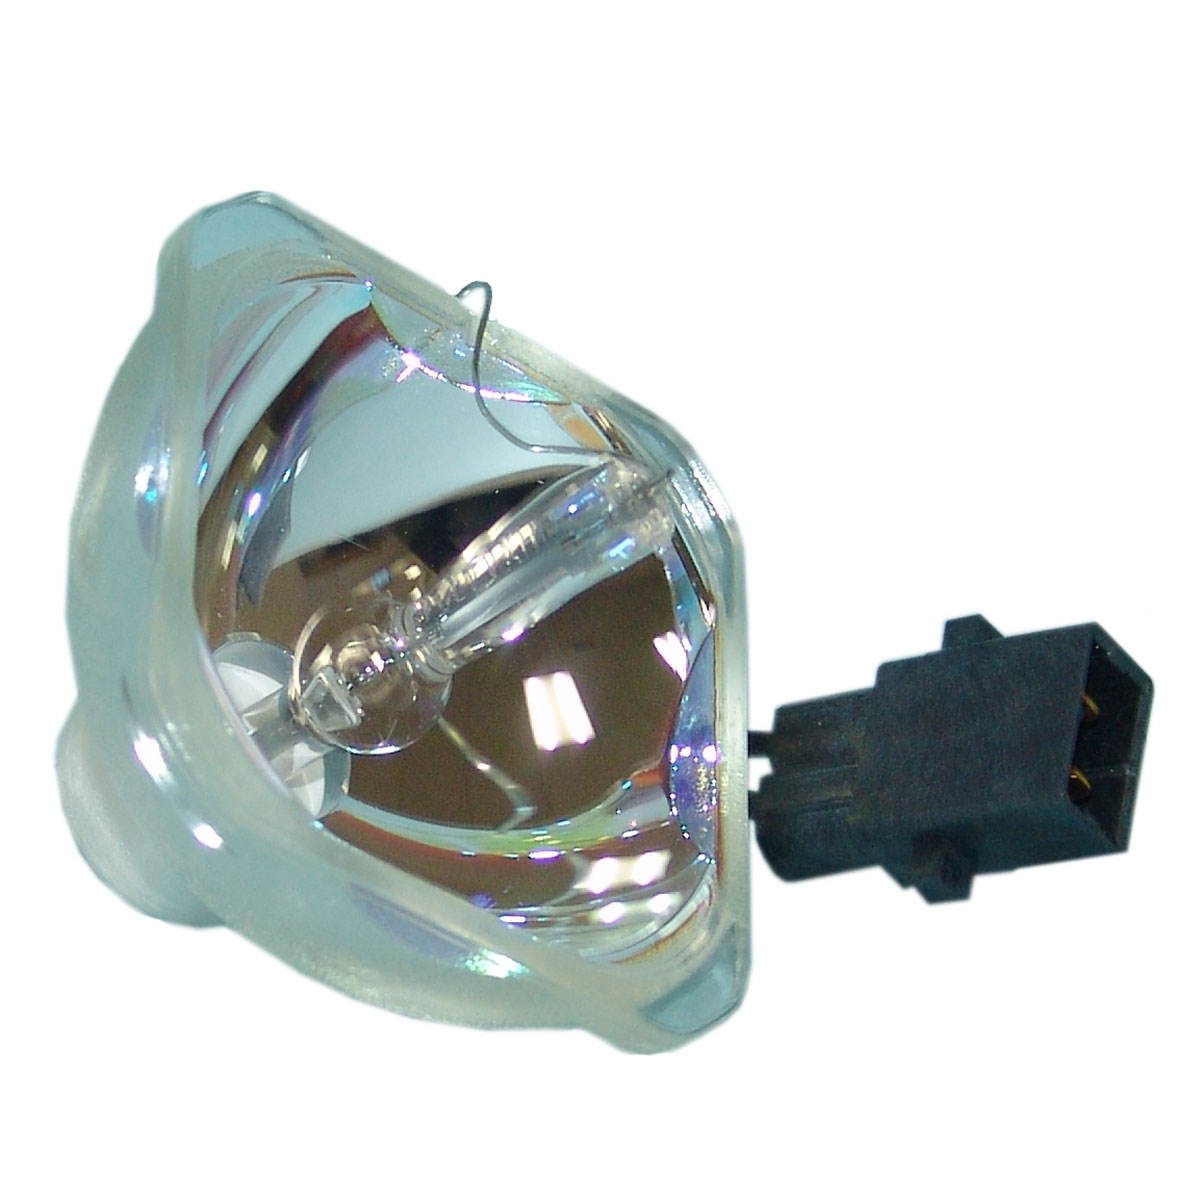 Replacement for Epson Home Cinema 400 Bare Lamp Only Projector Tv Lamp Bulb by Technical Precision